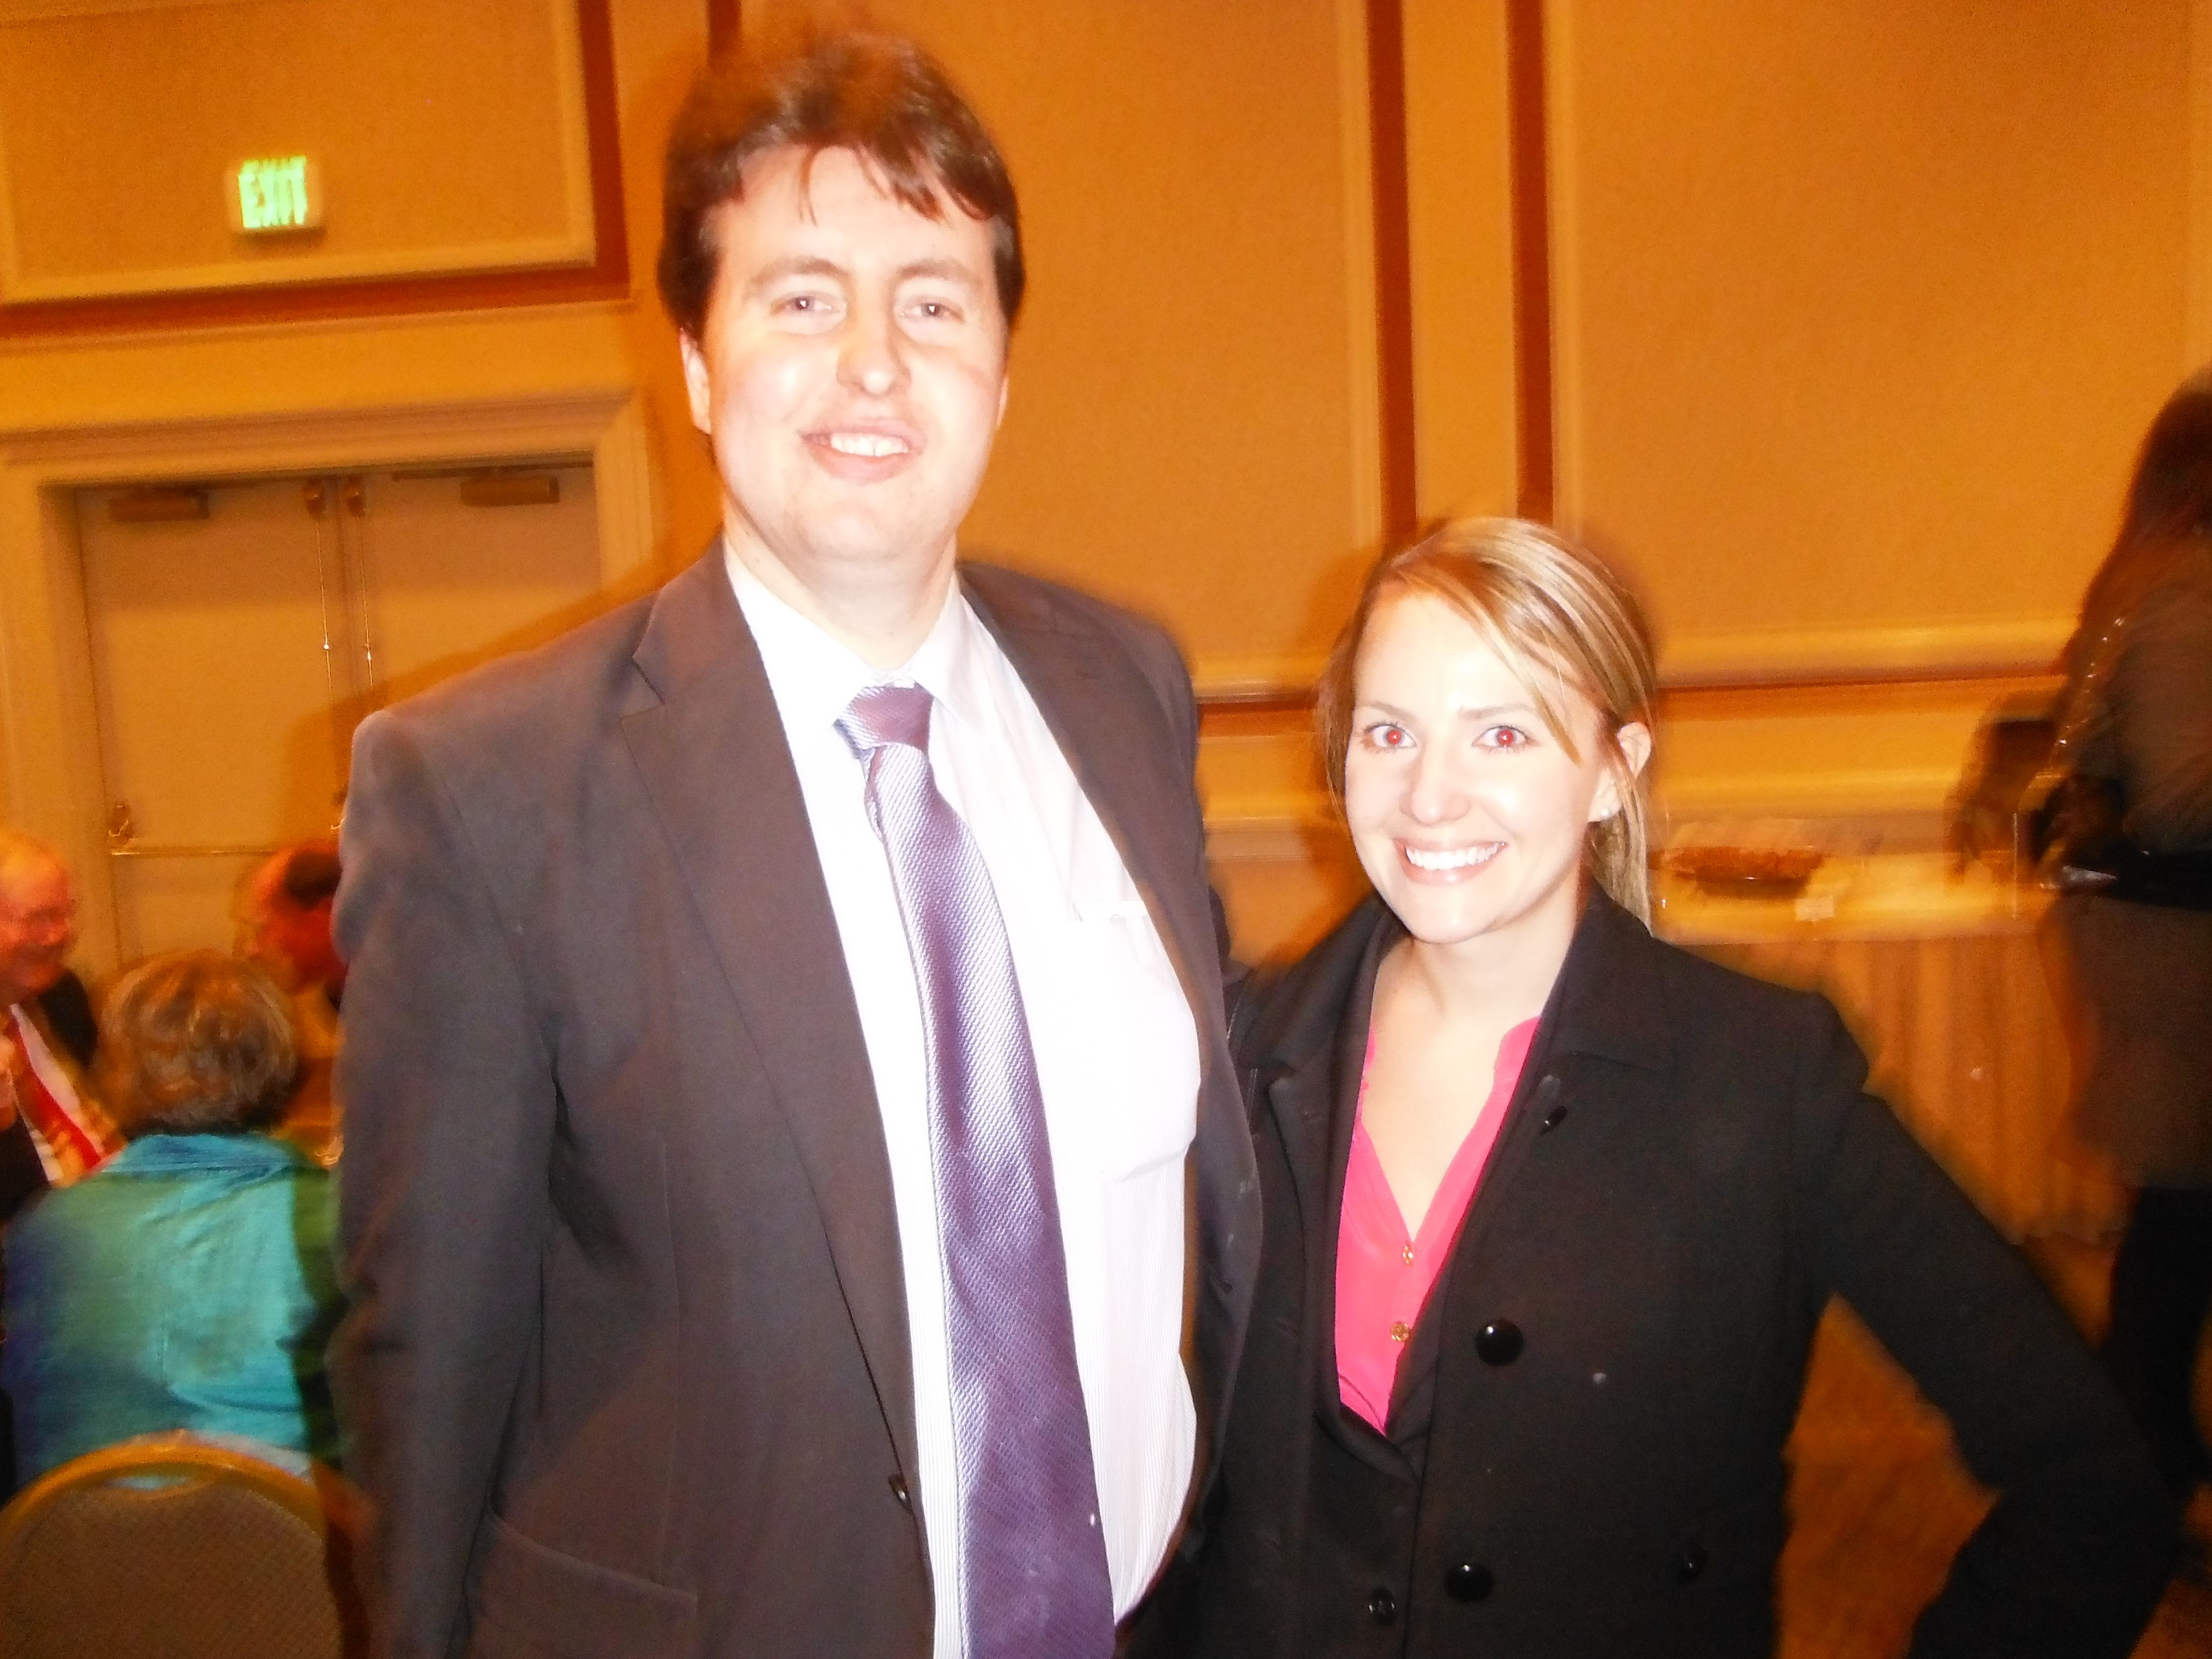 Attorney Evan Guthrie With Sarah Woodard Law Clerk For The Honorable Stephanie P Mcdonald At The Charleston County Bar Association An New Law Guthrie Law Firm